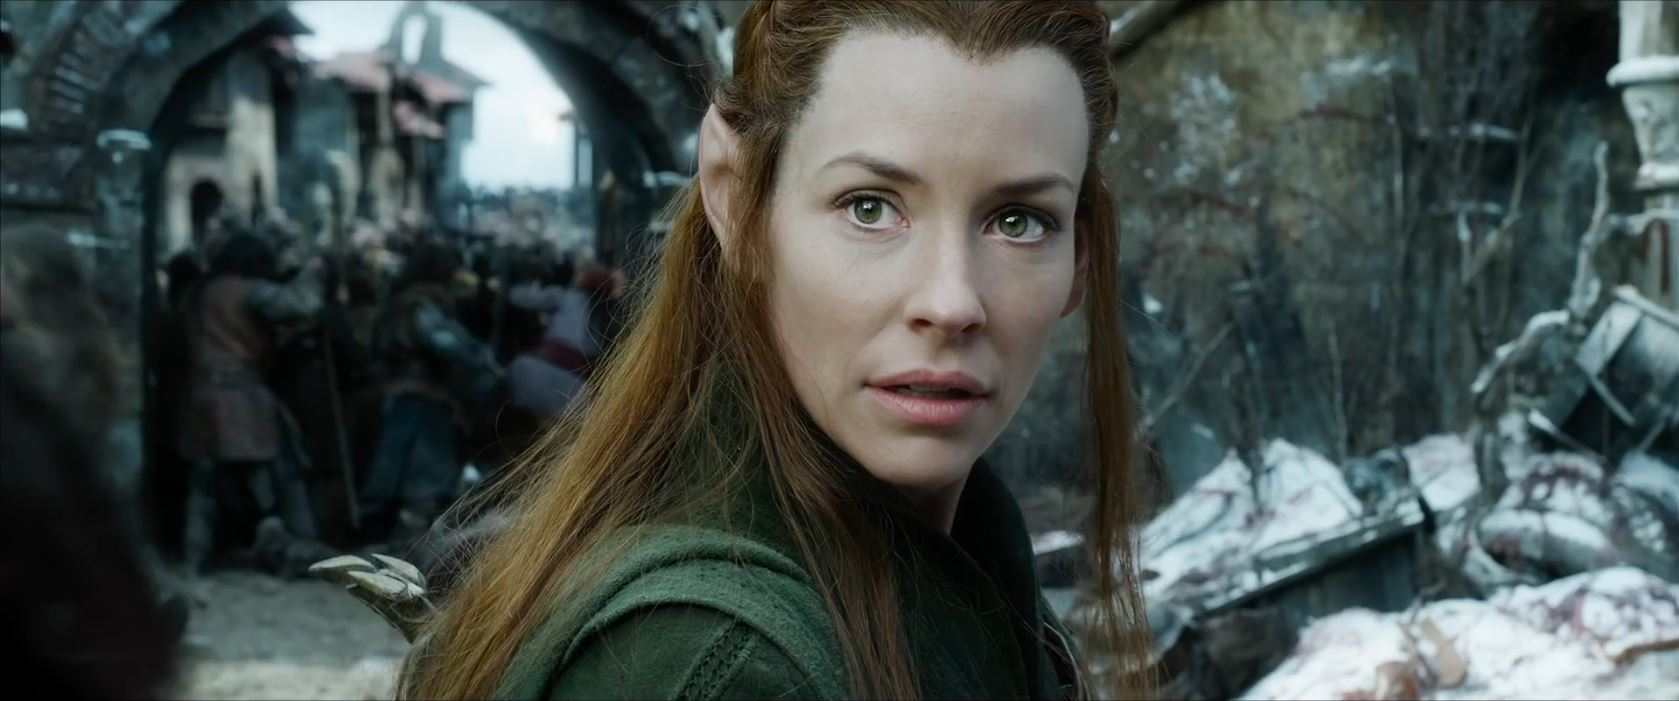 The Hobbit The Battle of the Five Armies Trailer - SciFiEmpire